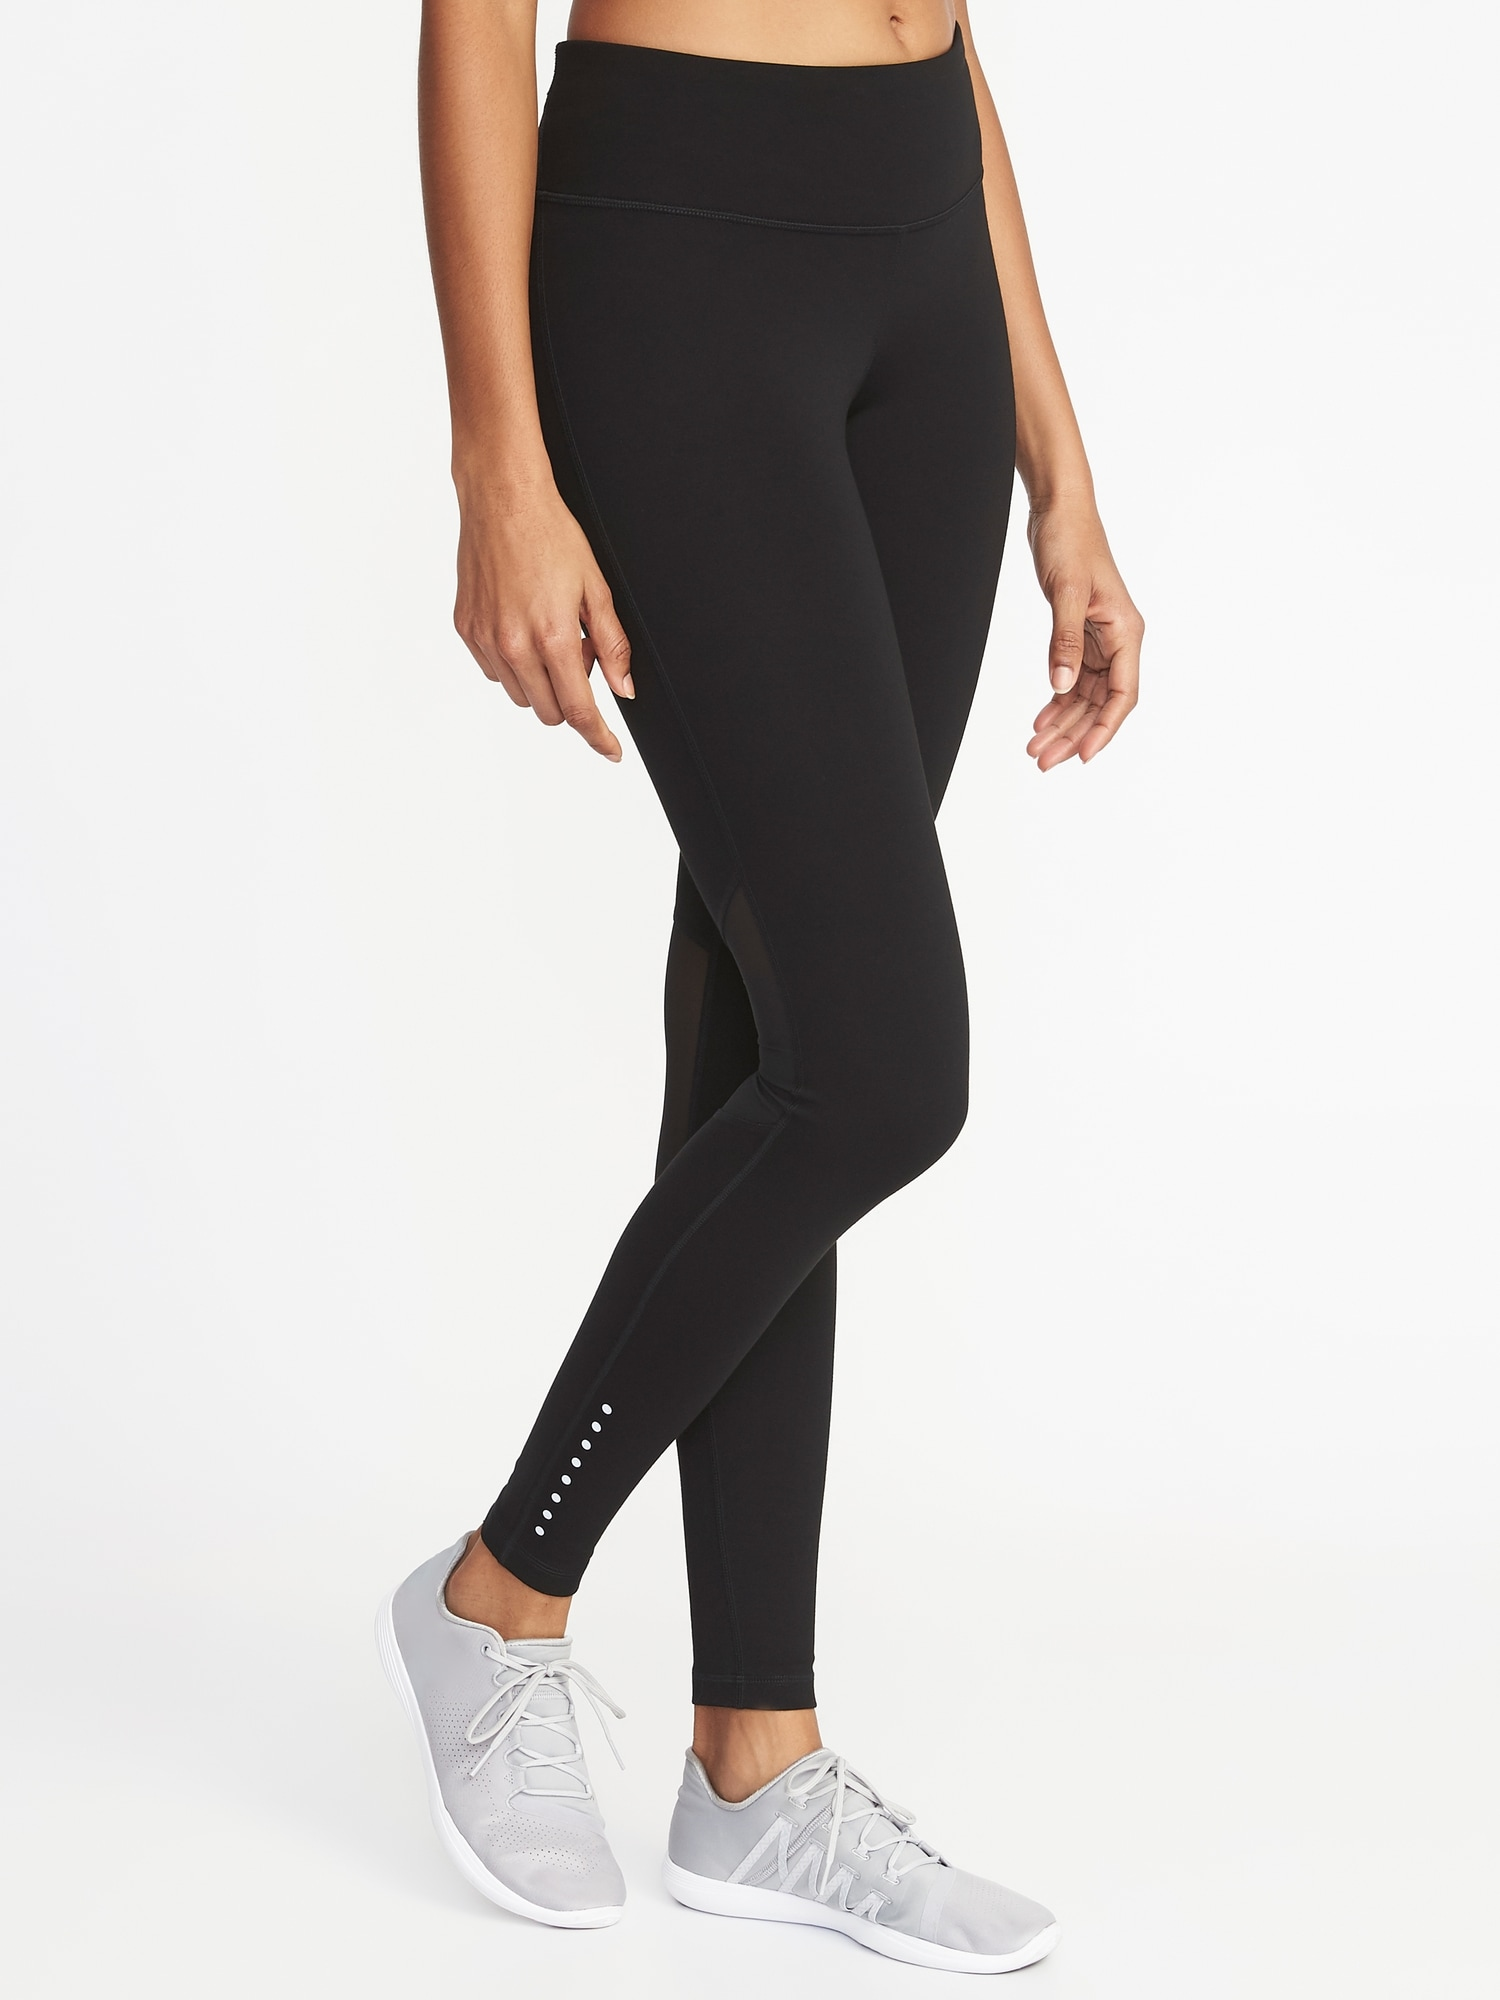 d27a62c03d8fea Mid-Rise Elevate Lightweight Compression Run Leggings for Women ...